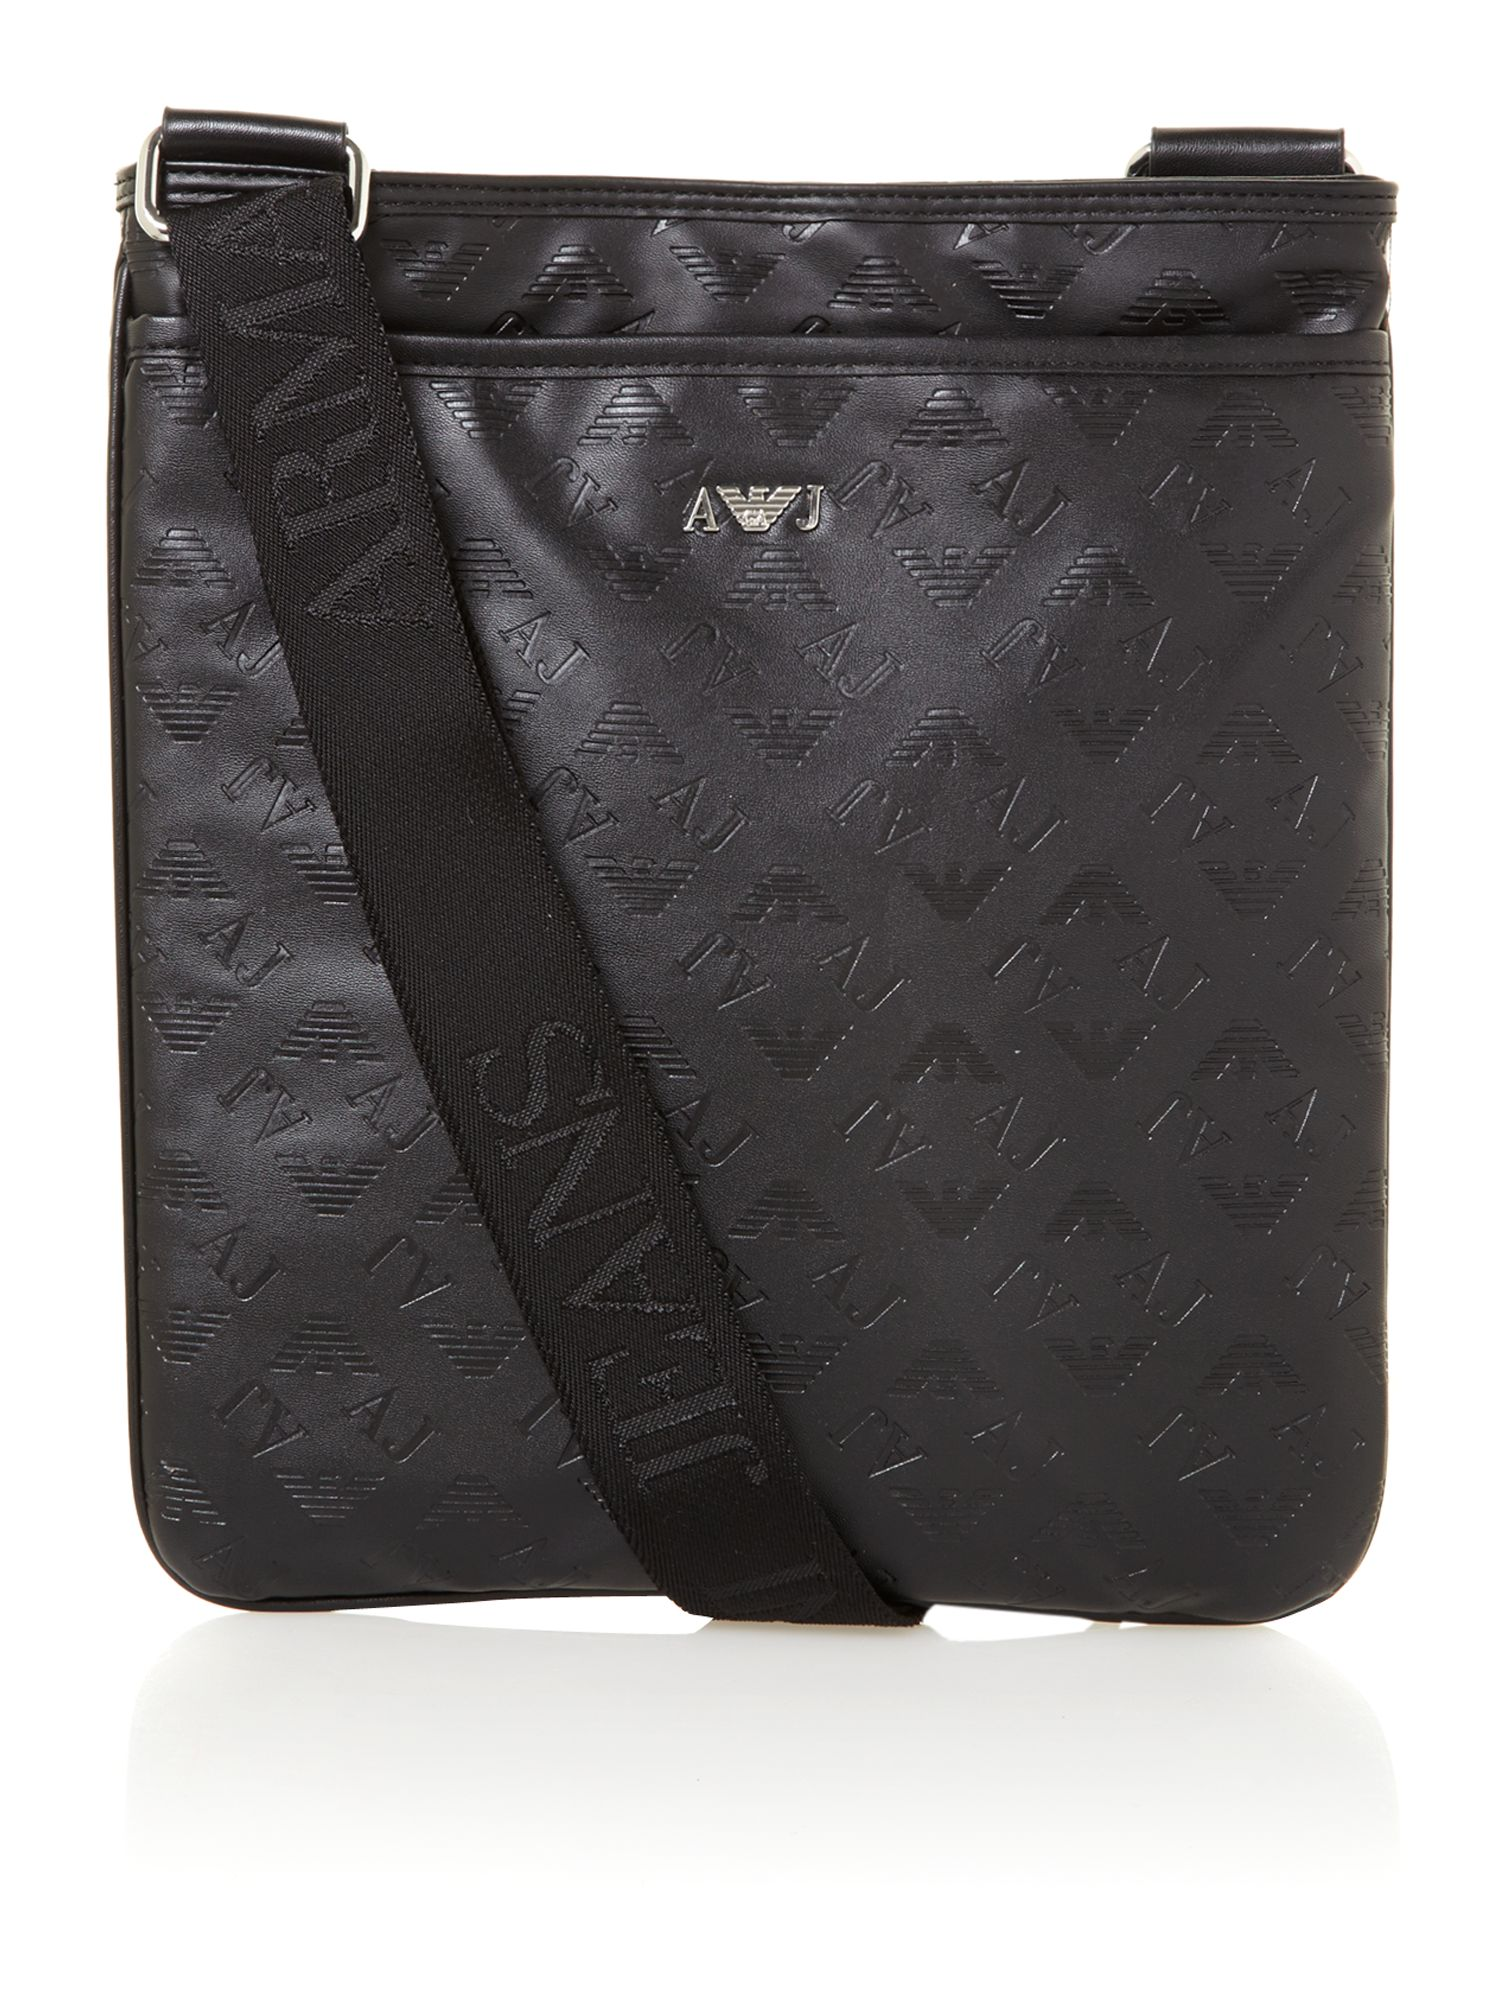 Man bag suitable for ipad